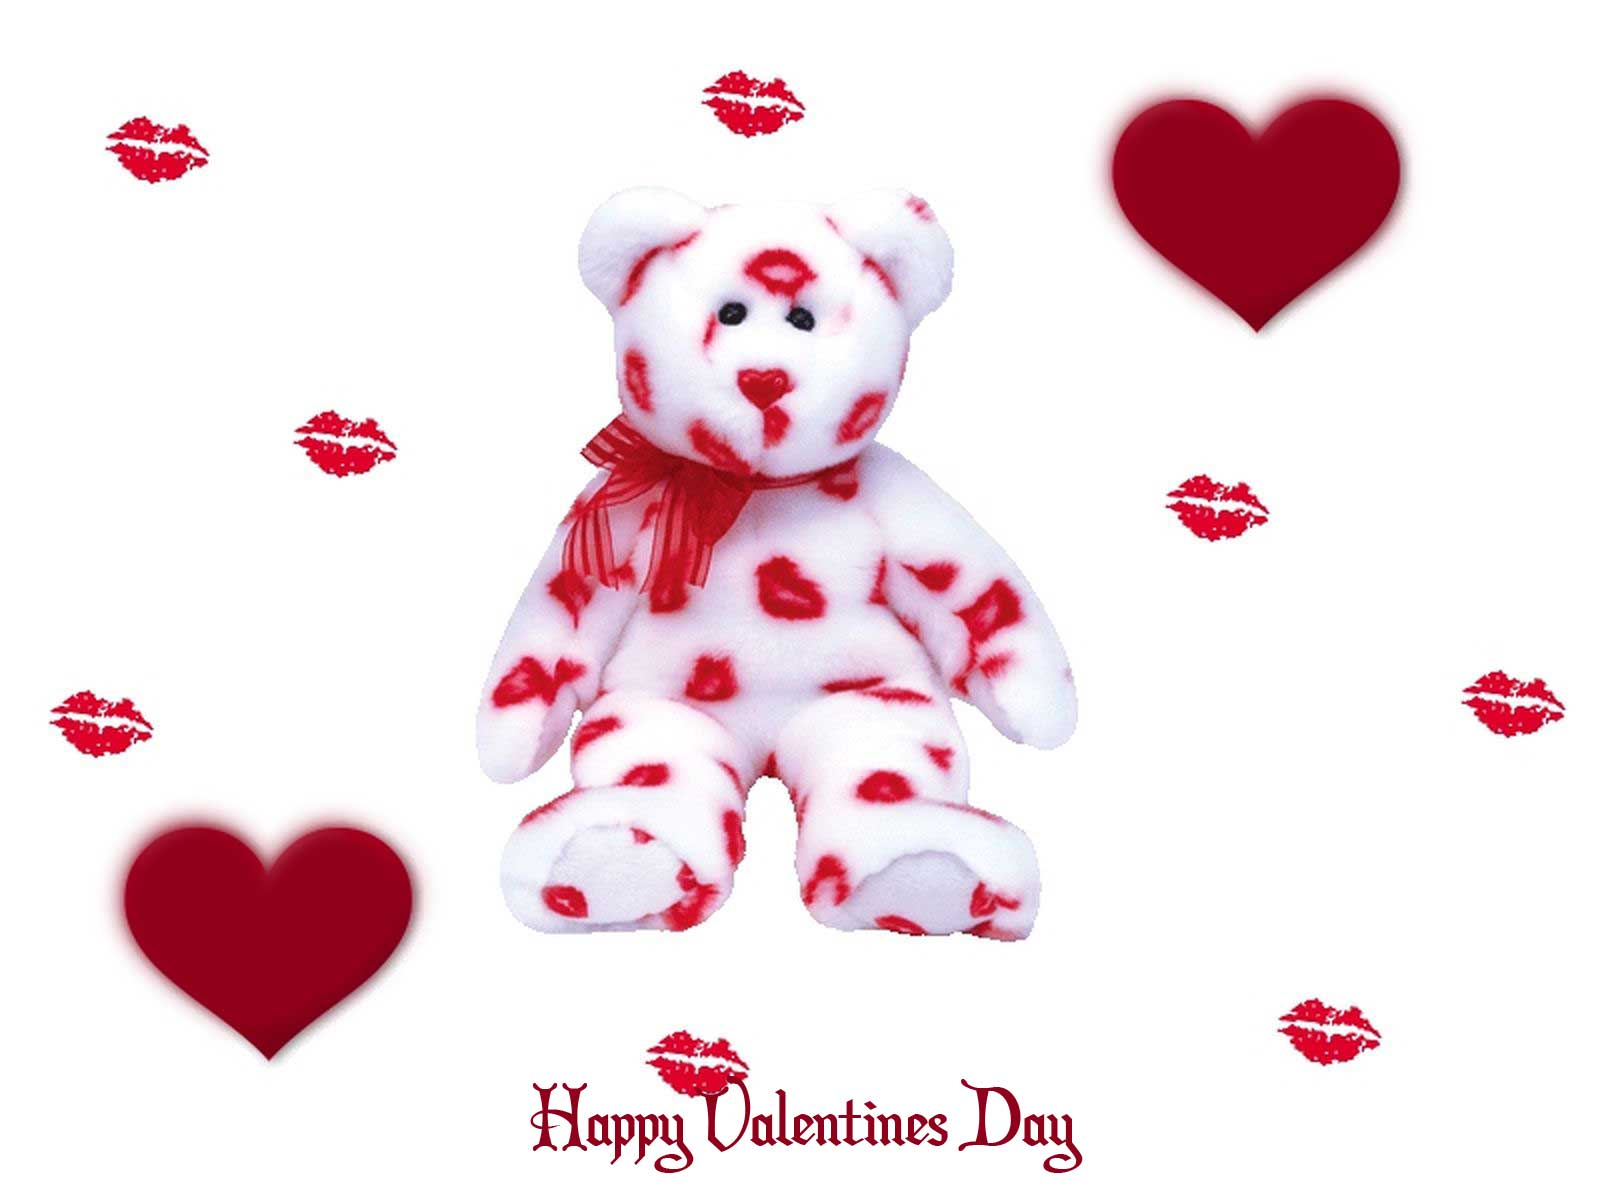 Red-and-white-color-valentines